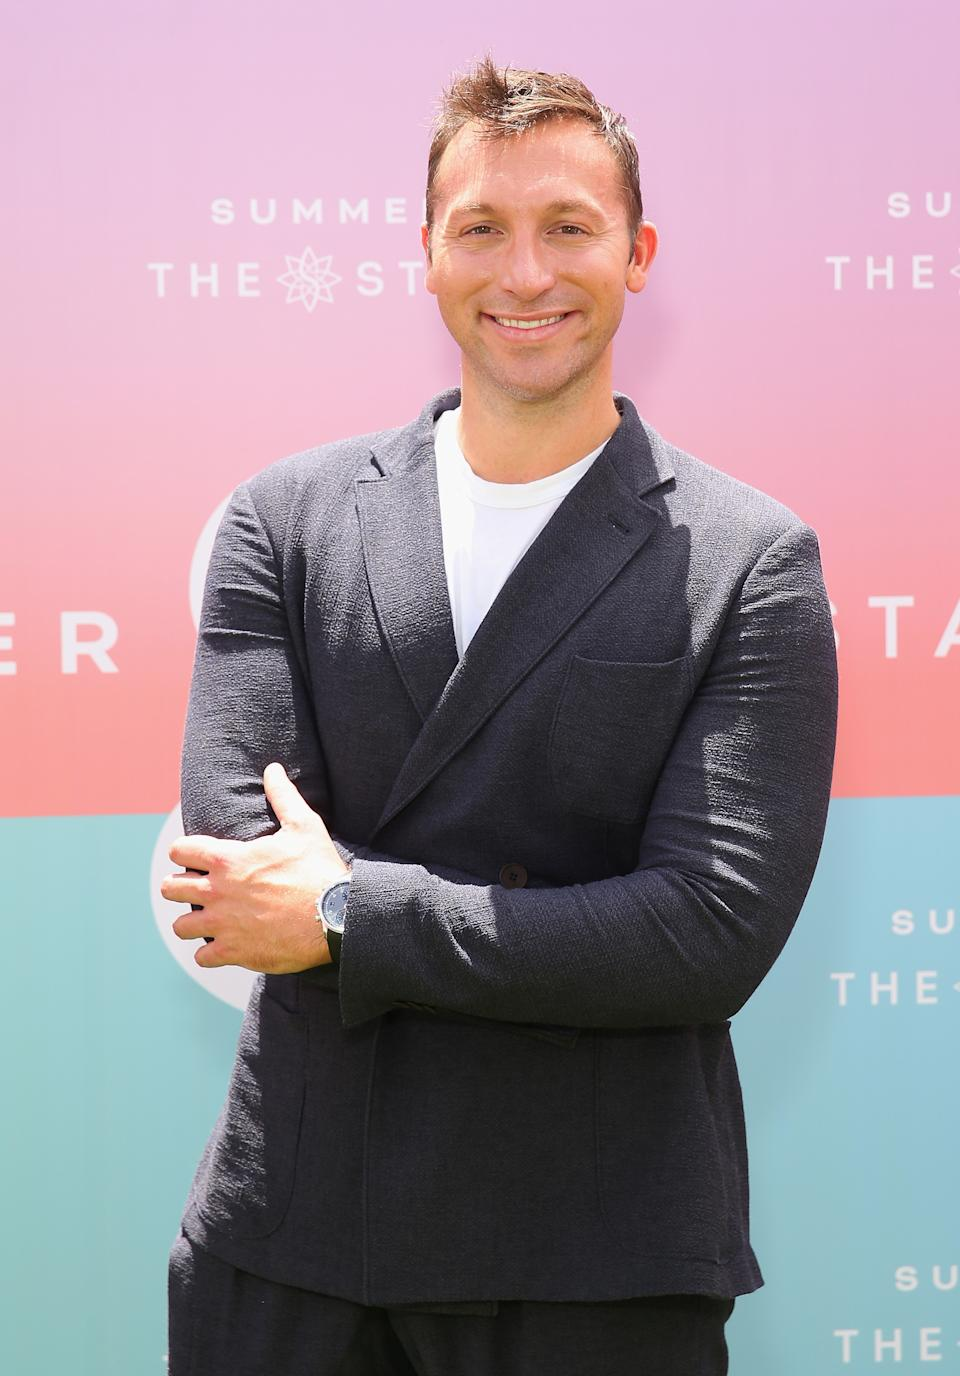 SYDNEY, AUSTRALIA - DECEMBER 08:  Ian Thorpe attends the Summer & The Star Official Launch at The Star on December 8, 2017 in Sydney, Australia.  (Photo by Don Arnold/WireImage)